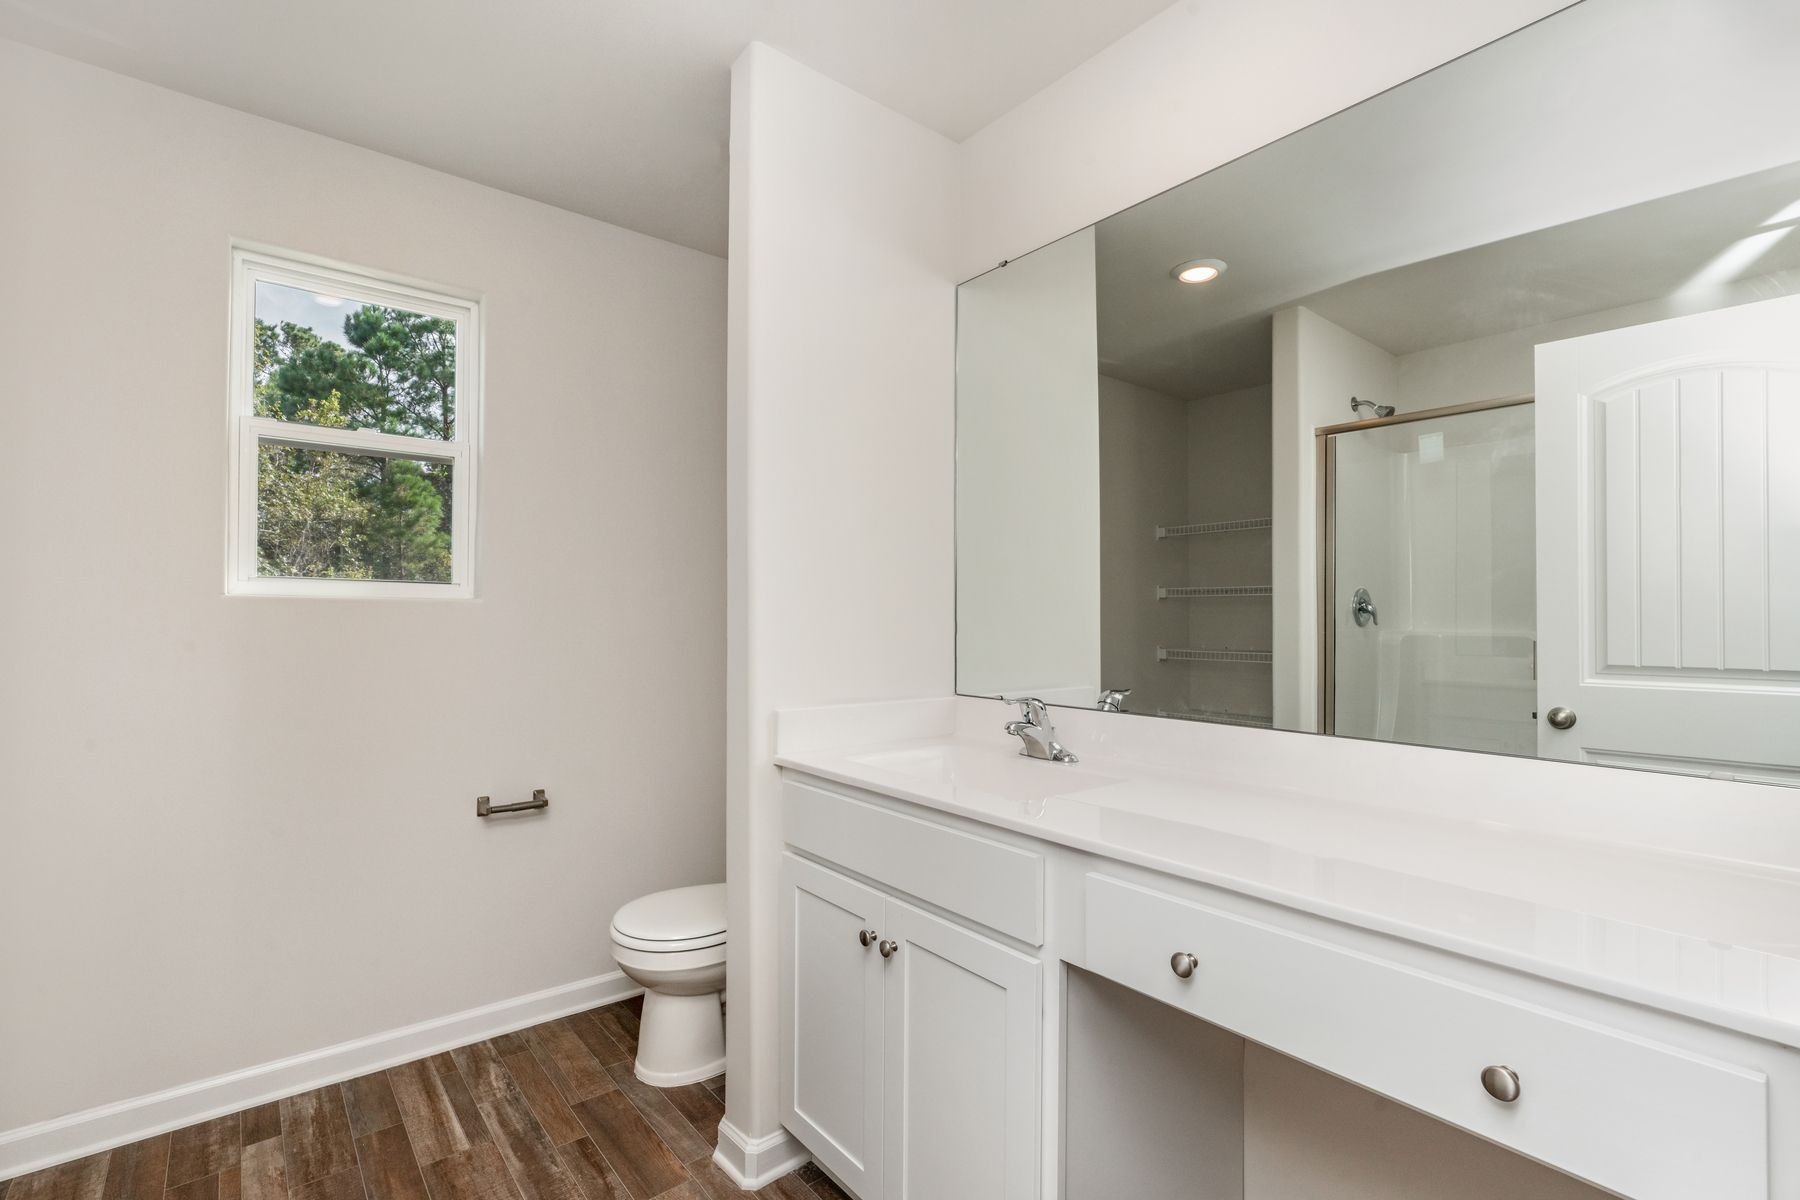 Bathroom featured in the Allatoona By LGI Homes in Jacksonville, NC